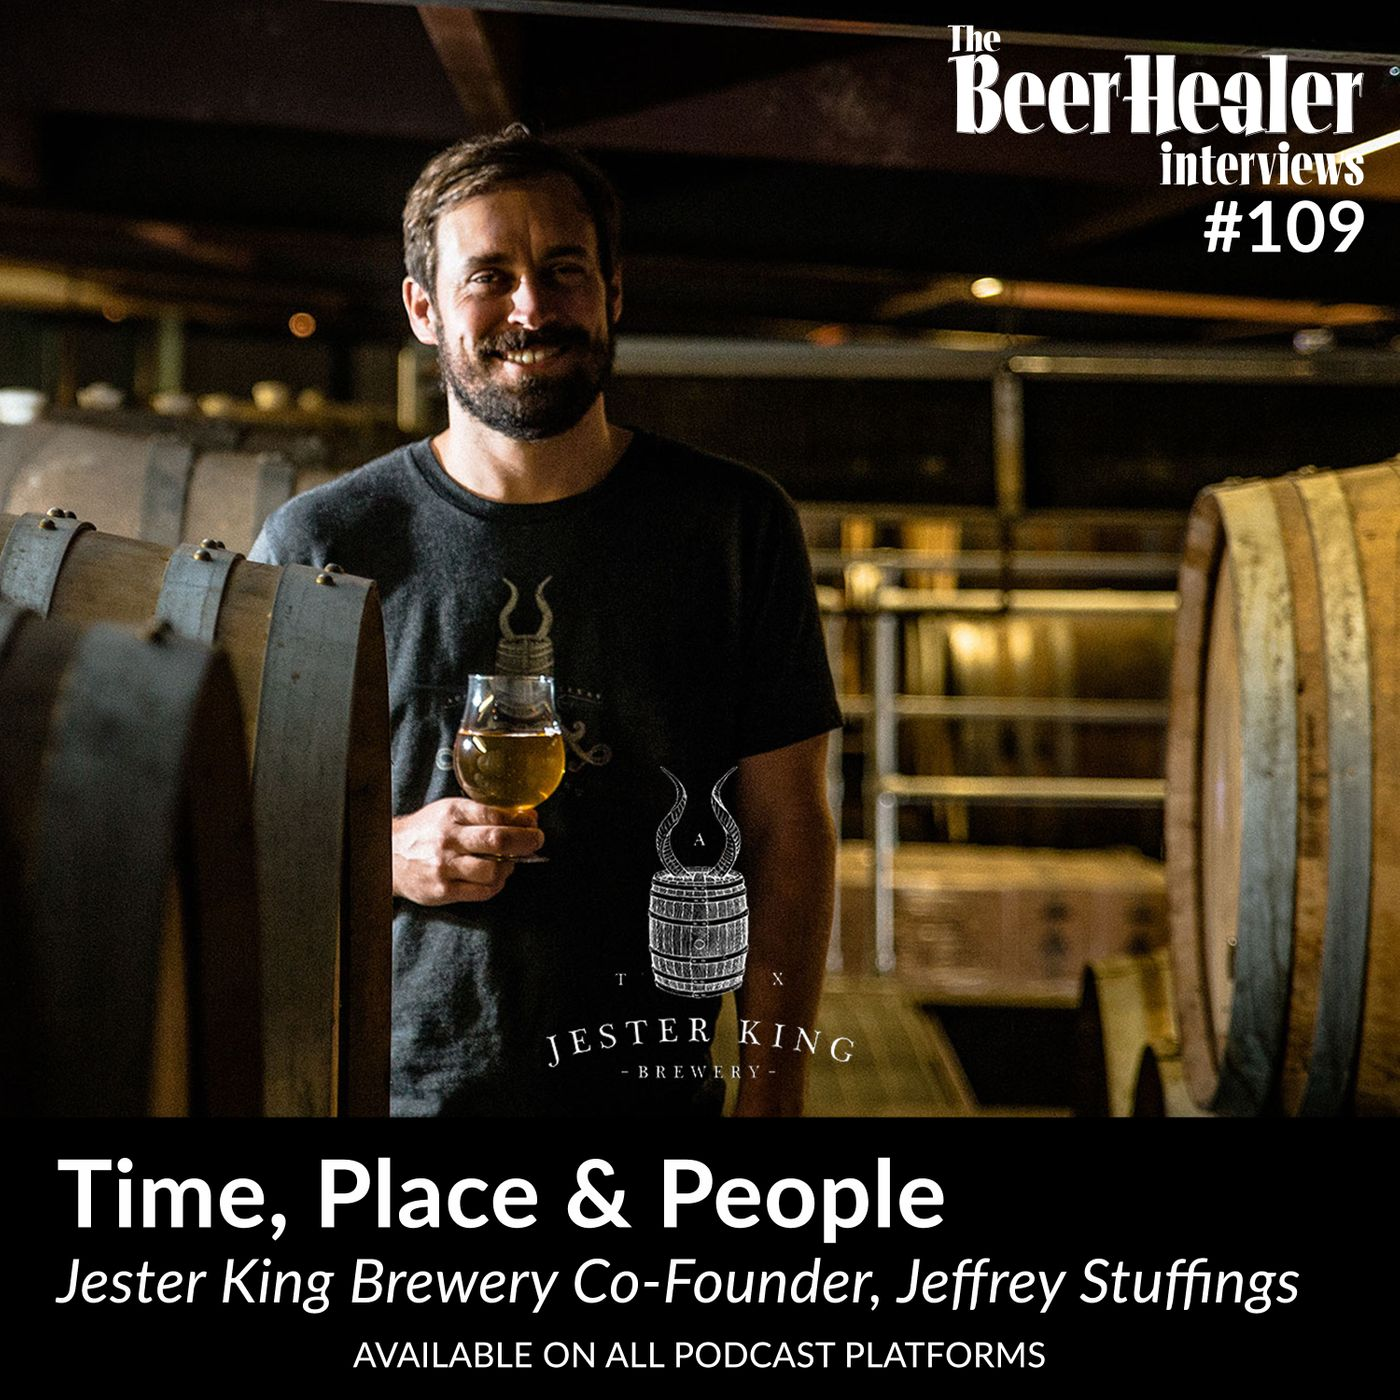 Ep. 109 - Time, Place & People. With Jester King Co-Founder, Jeffrey Stuffings.